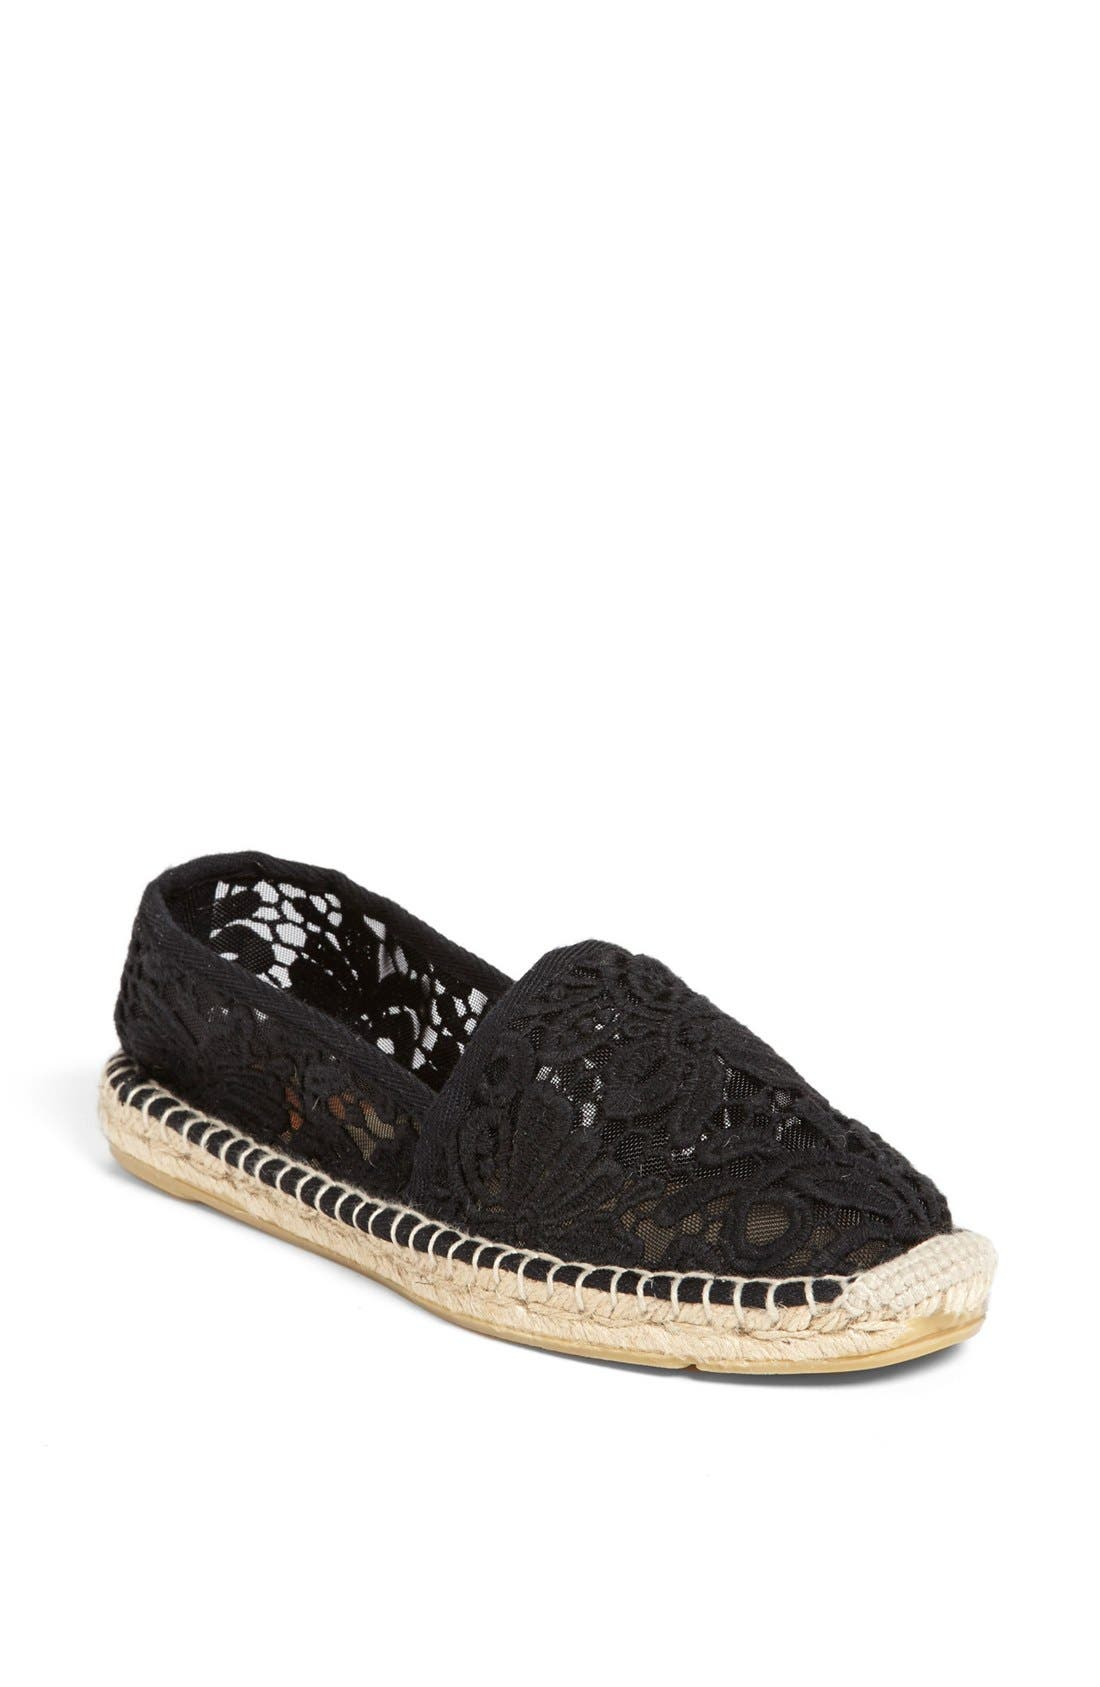 TORY BURCH 'Abbe' Espadrille, Main, color, 001